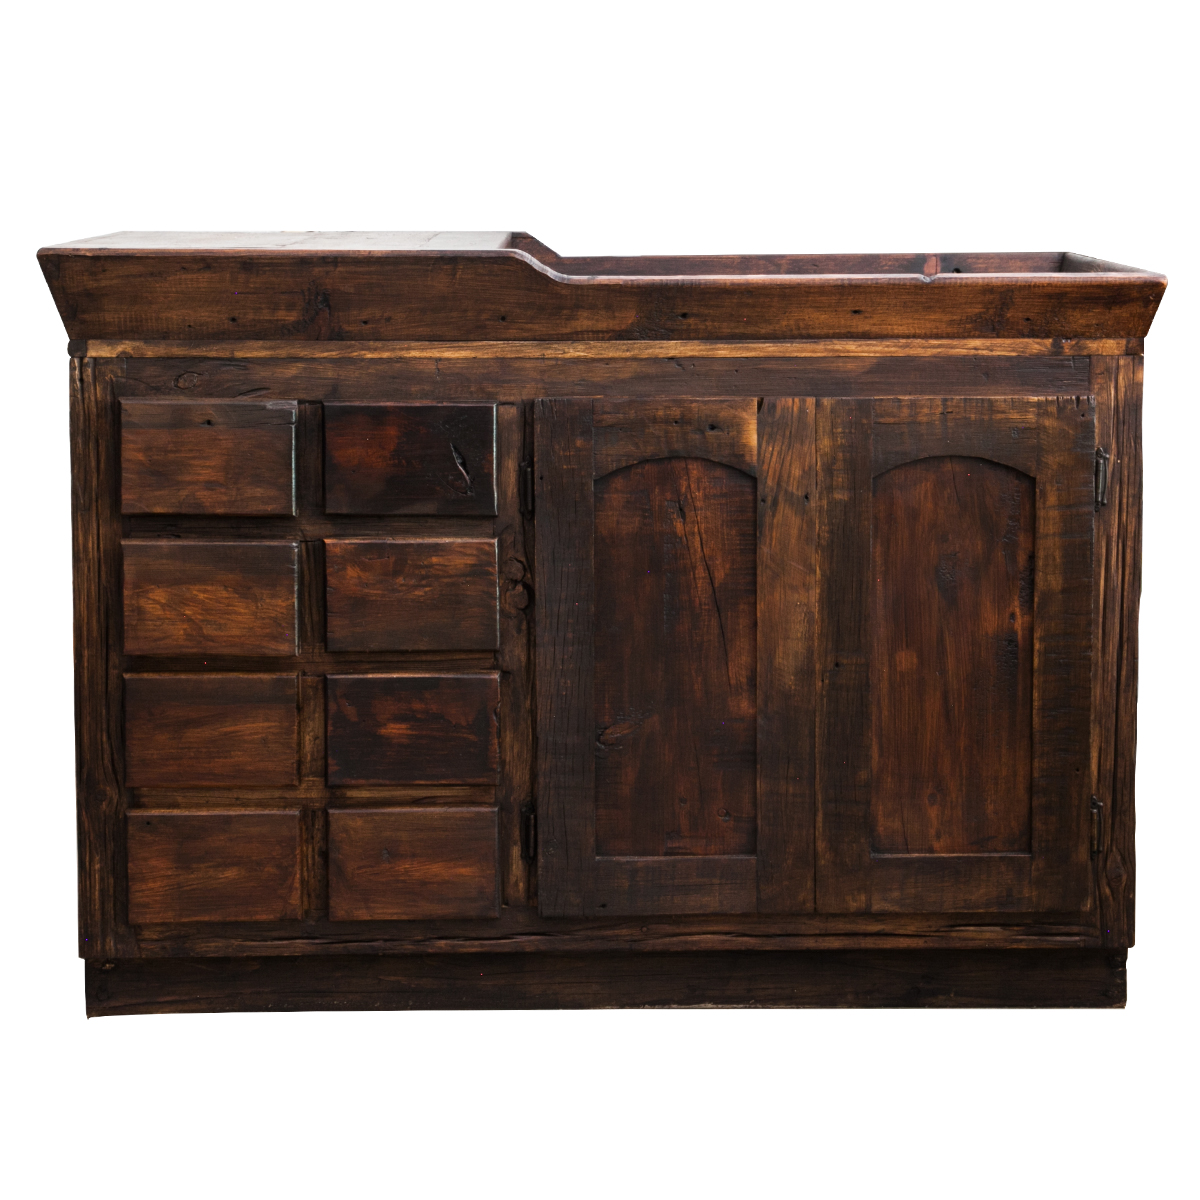 Bathroom Vanities For Sale alden reclaimed bathroom vanity for sale - perfect fit for any